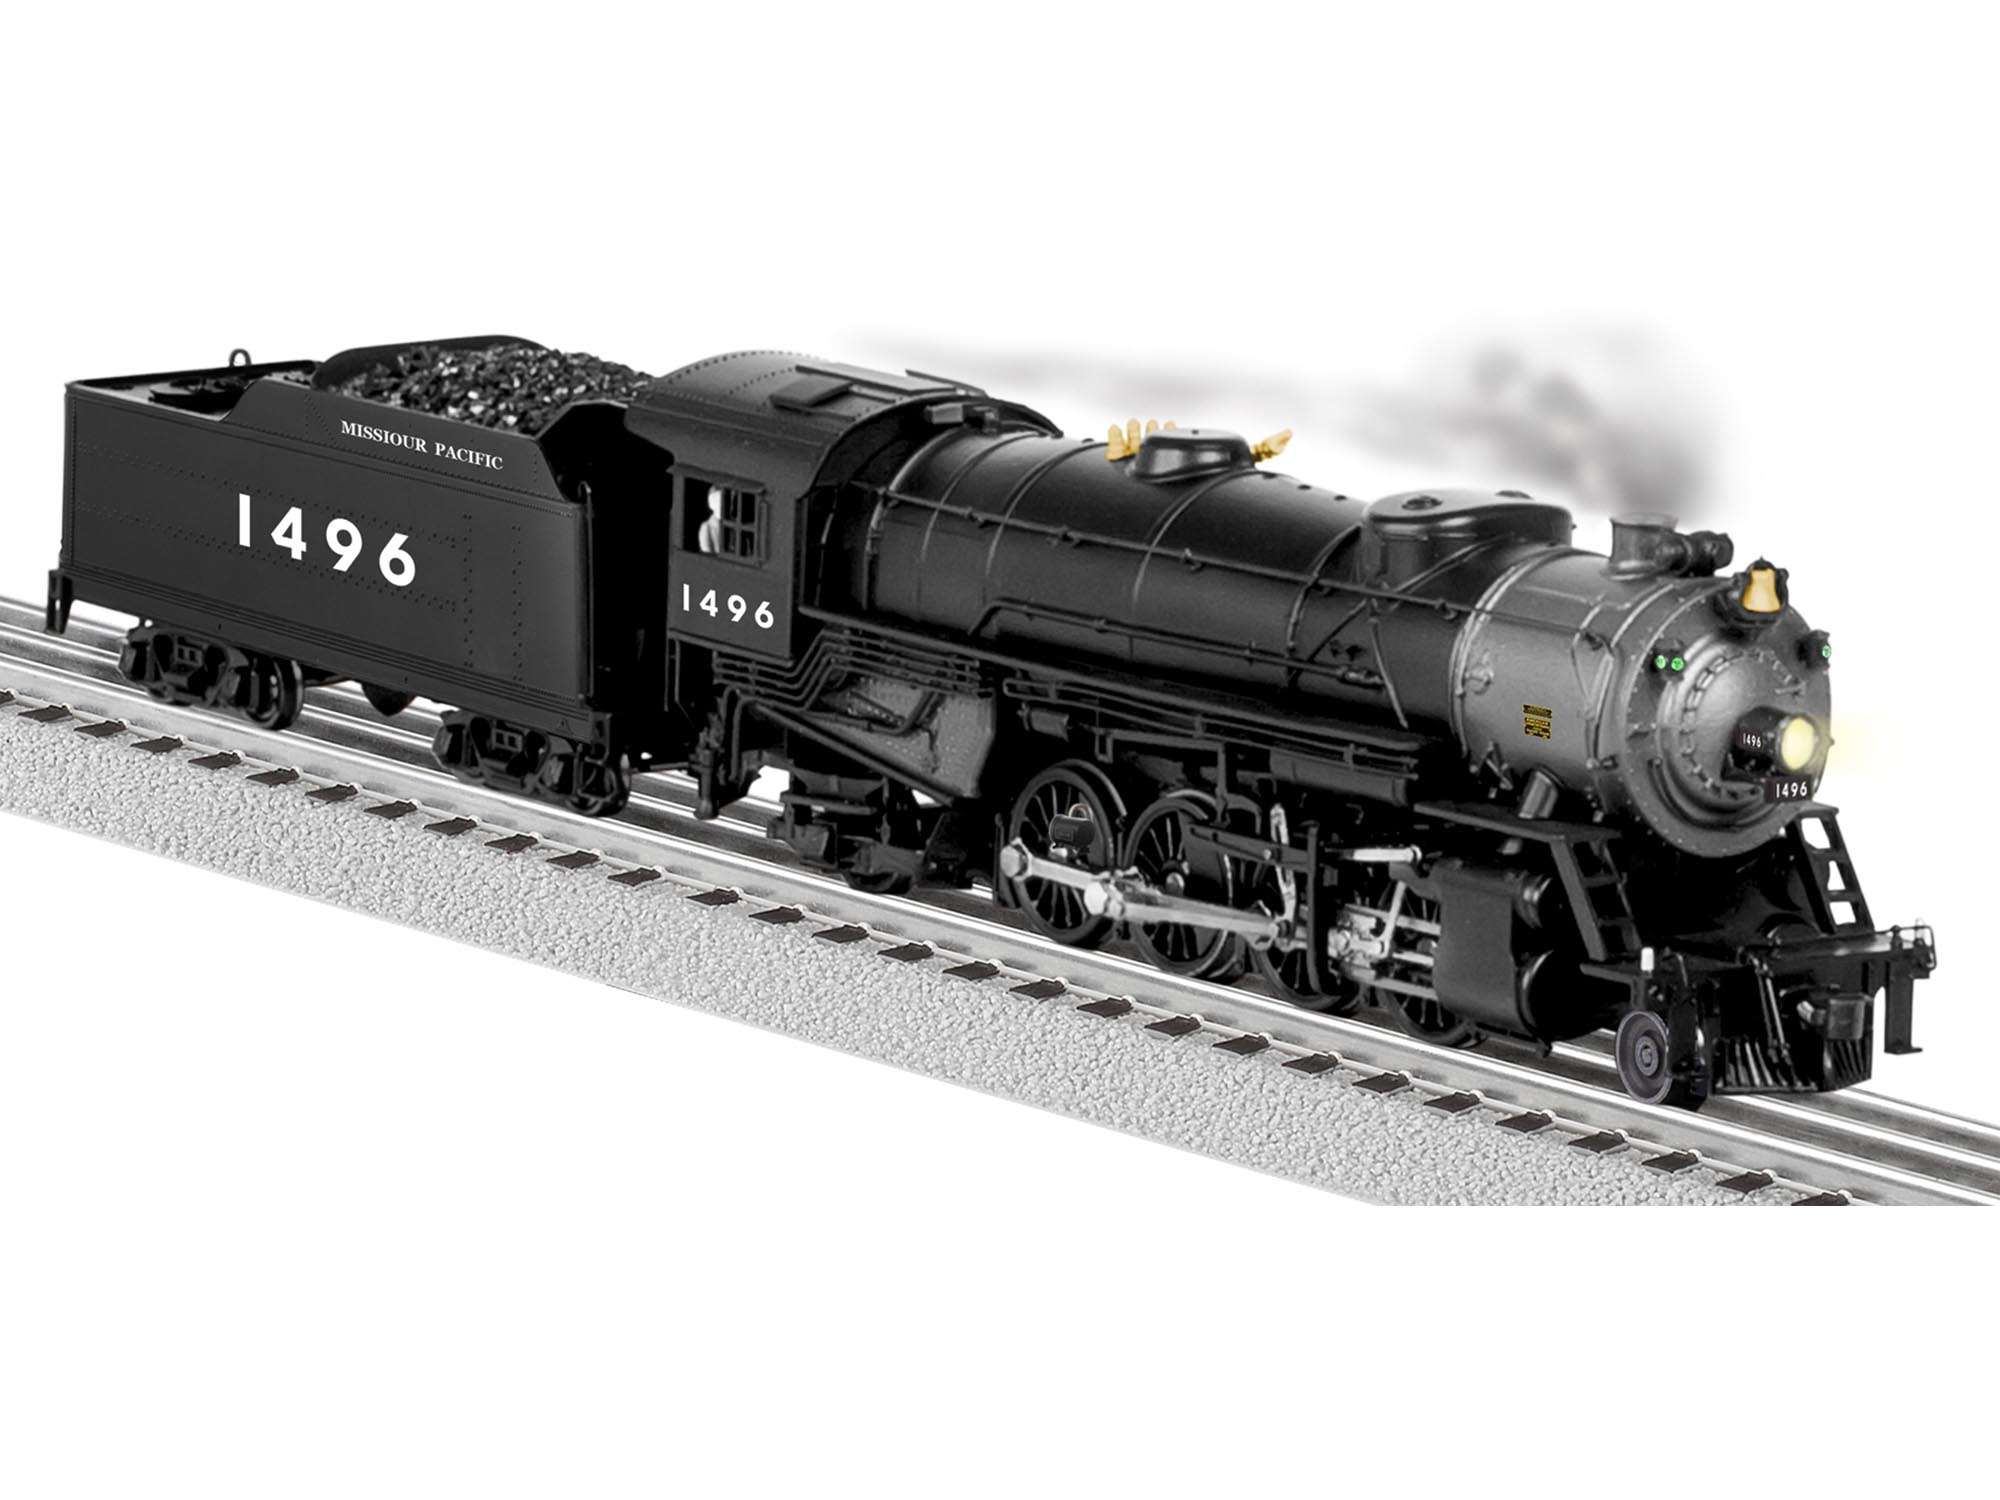 6-81183 MISSOURI PACIFIC LEGACY MIKADO 2-8-2 STEAM LOCOMOTIVE